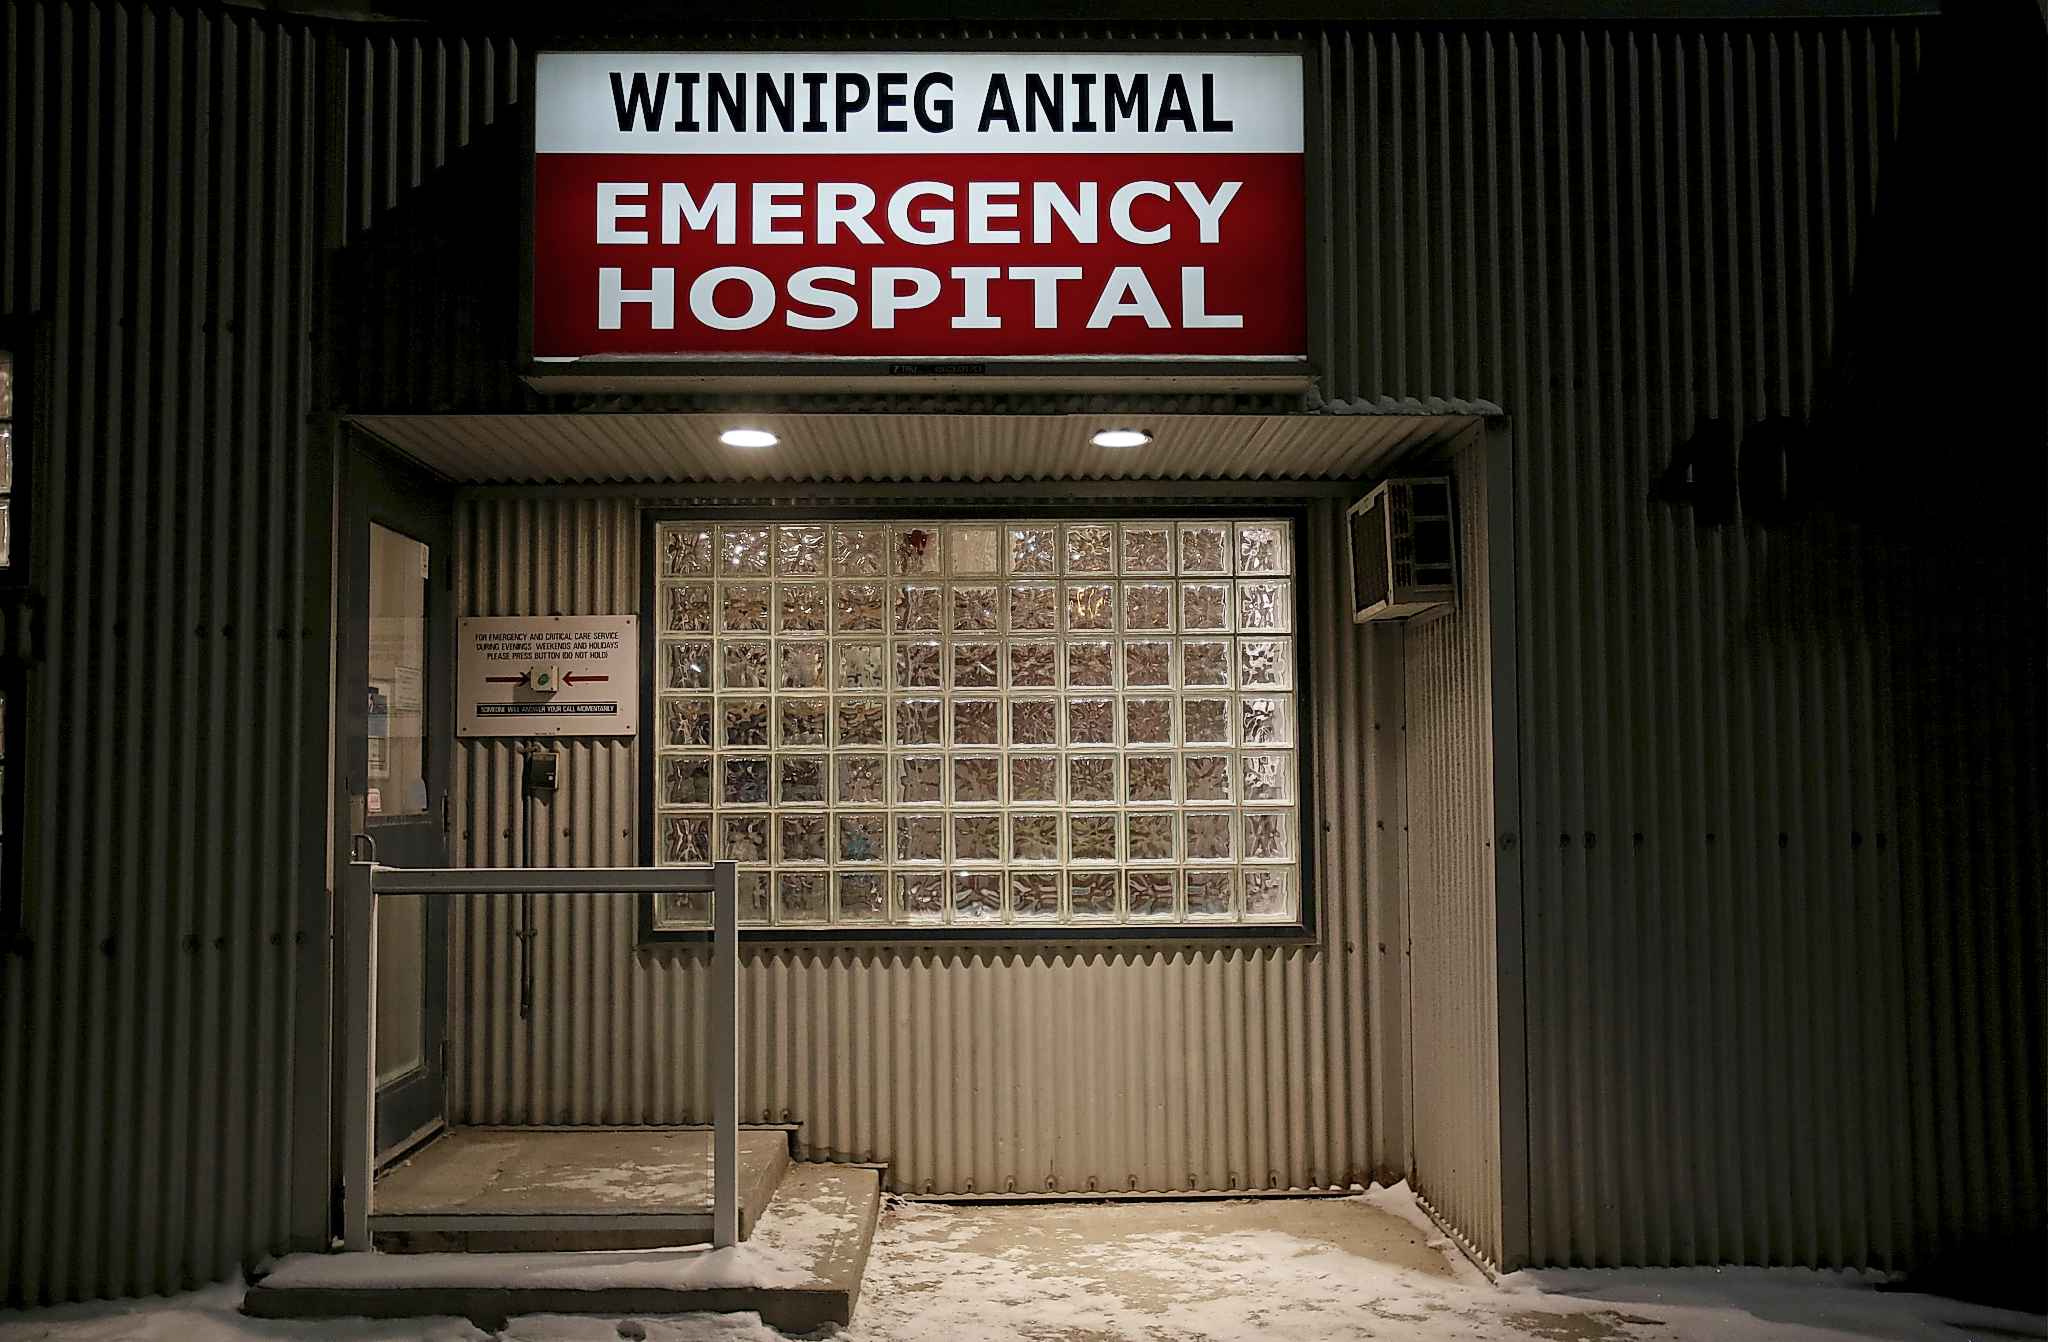 The animal hospital is open 24-hours a day, 365 days a year.